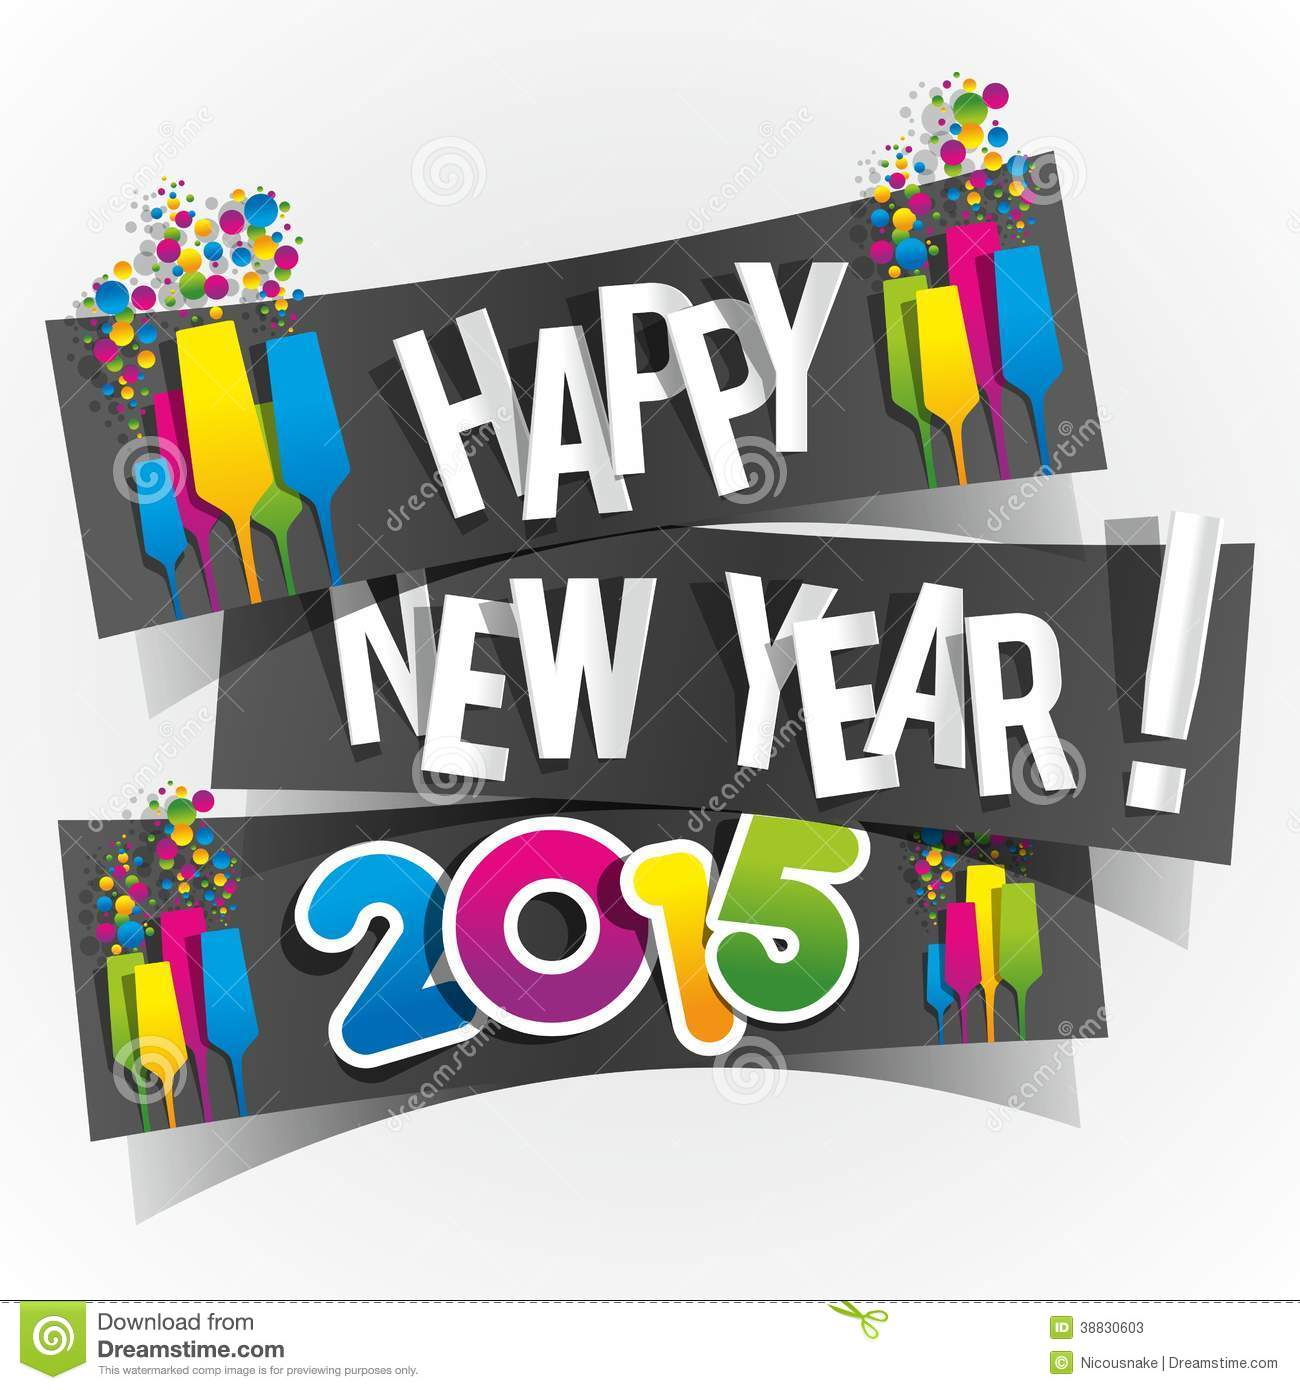 Happy New Year 2015 Clip Art - More information